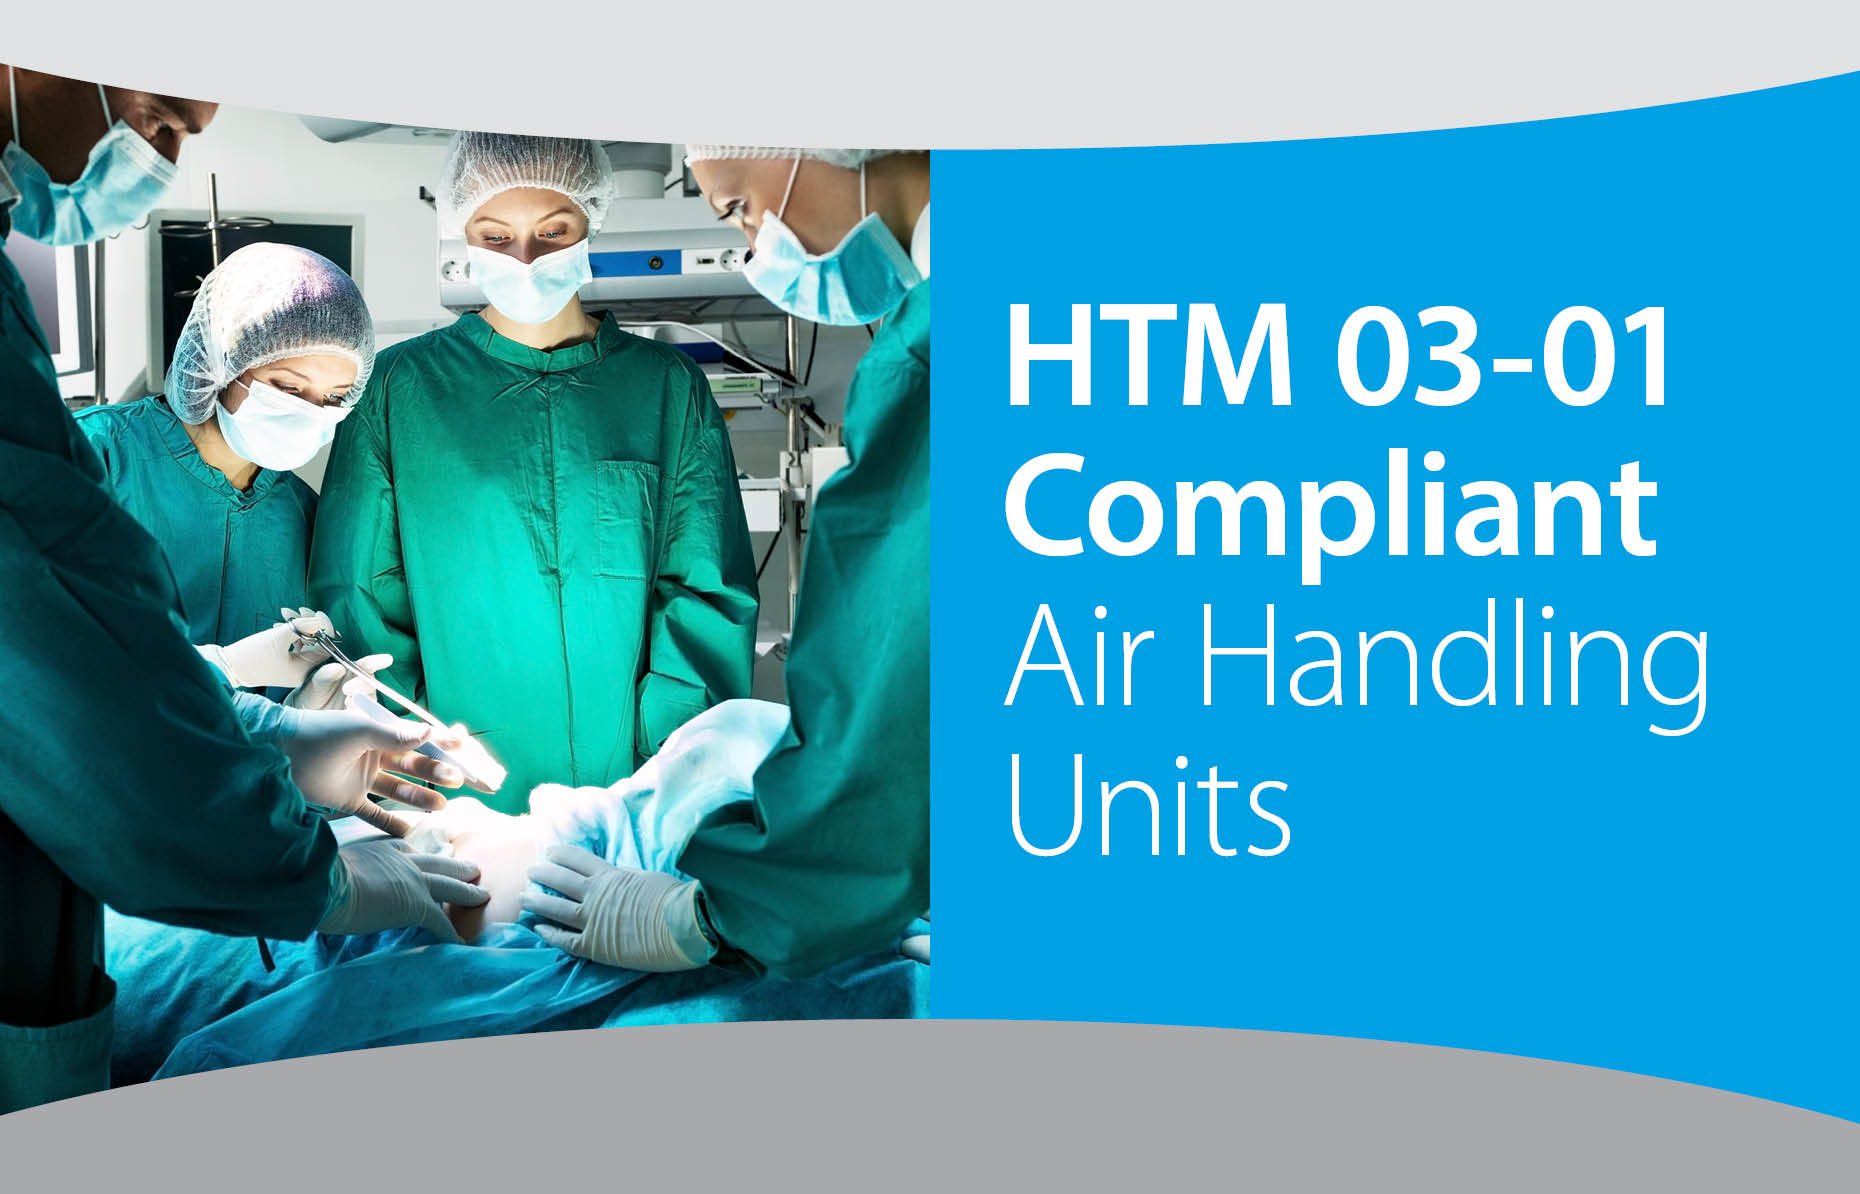 HTM 03-01 Compliant Air Handling Units